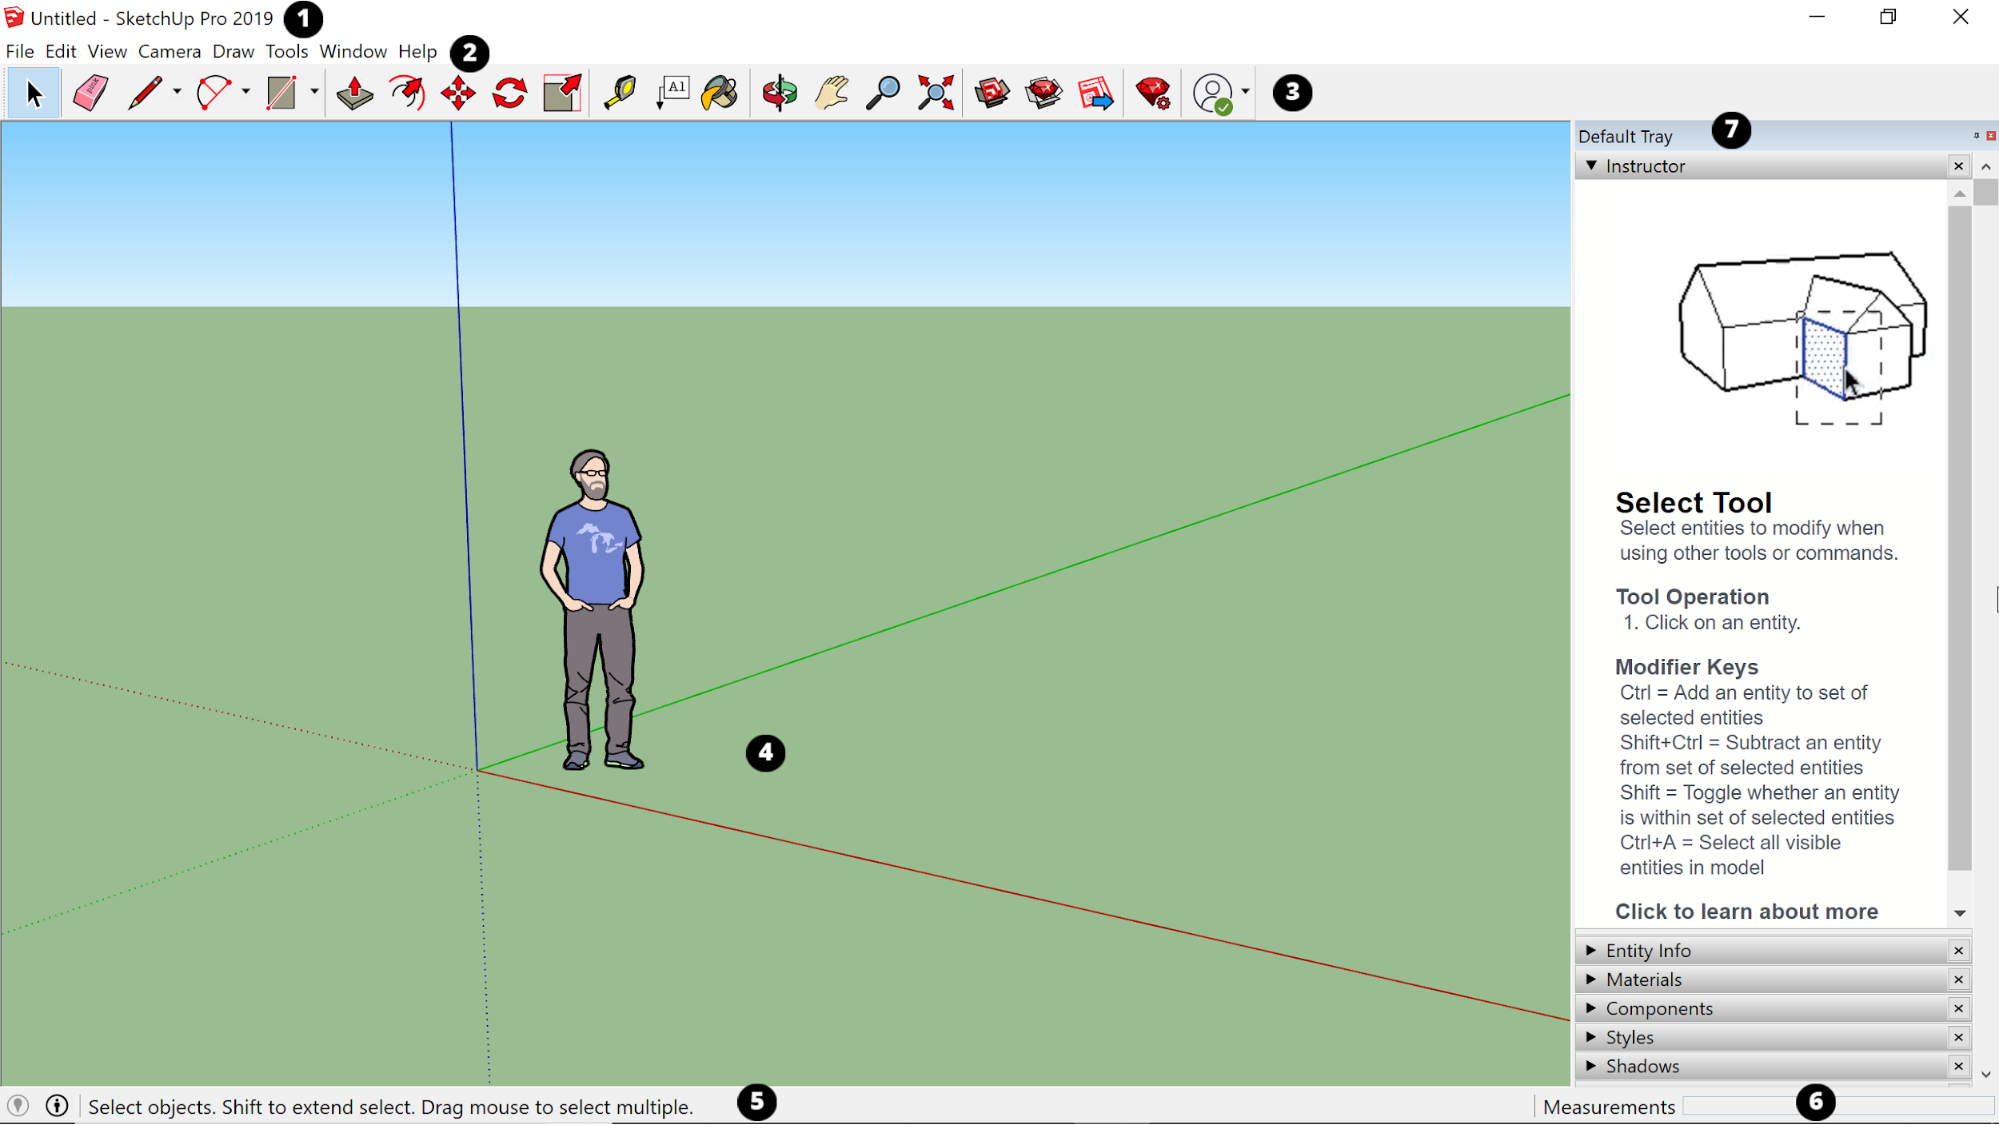 SketchUp interface in Windows